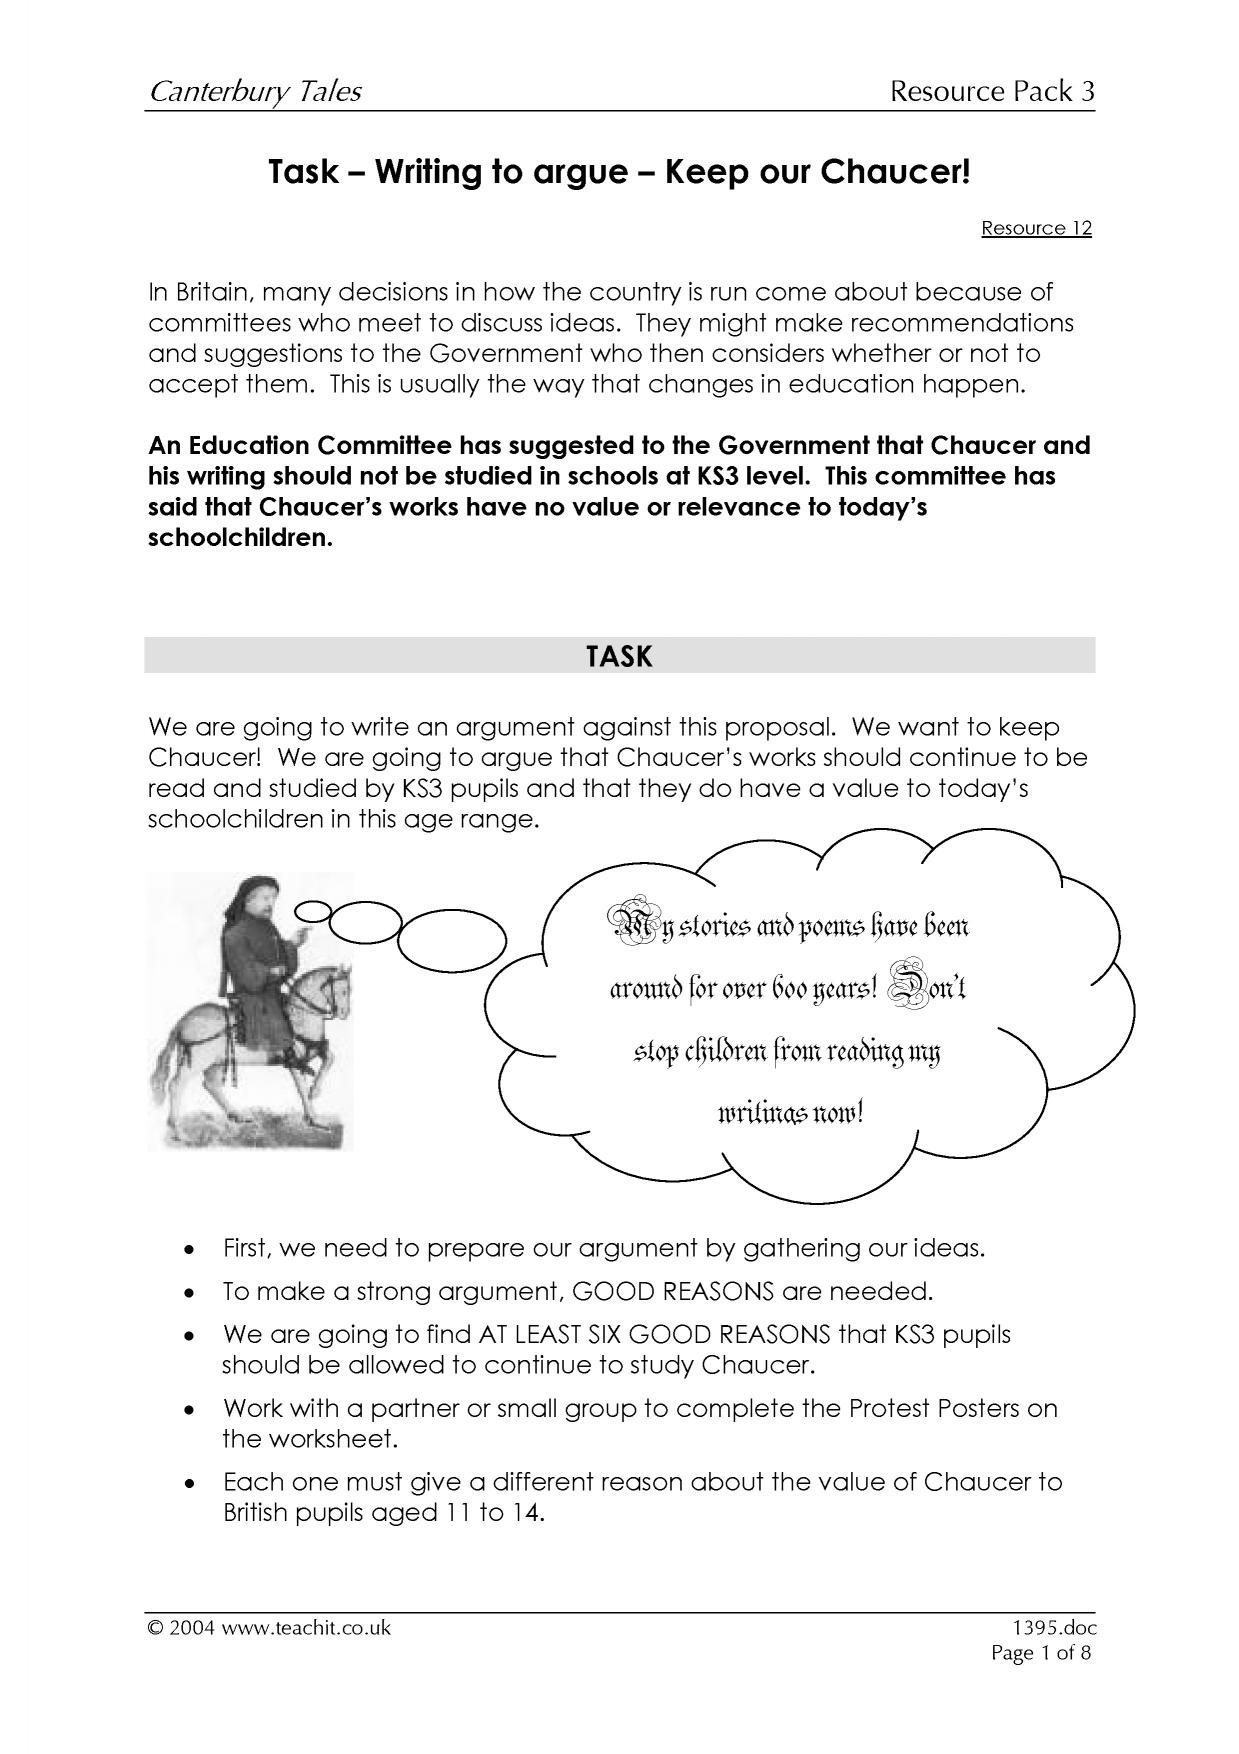 014 Canterbury Tales Essay Topics Best Images20ologue Questions20 Questions For Research Remarkable Paper Defense Good Papers Examples Full